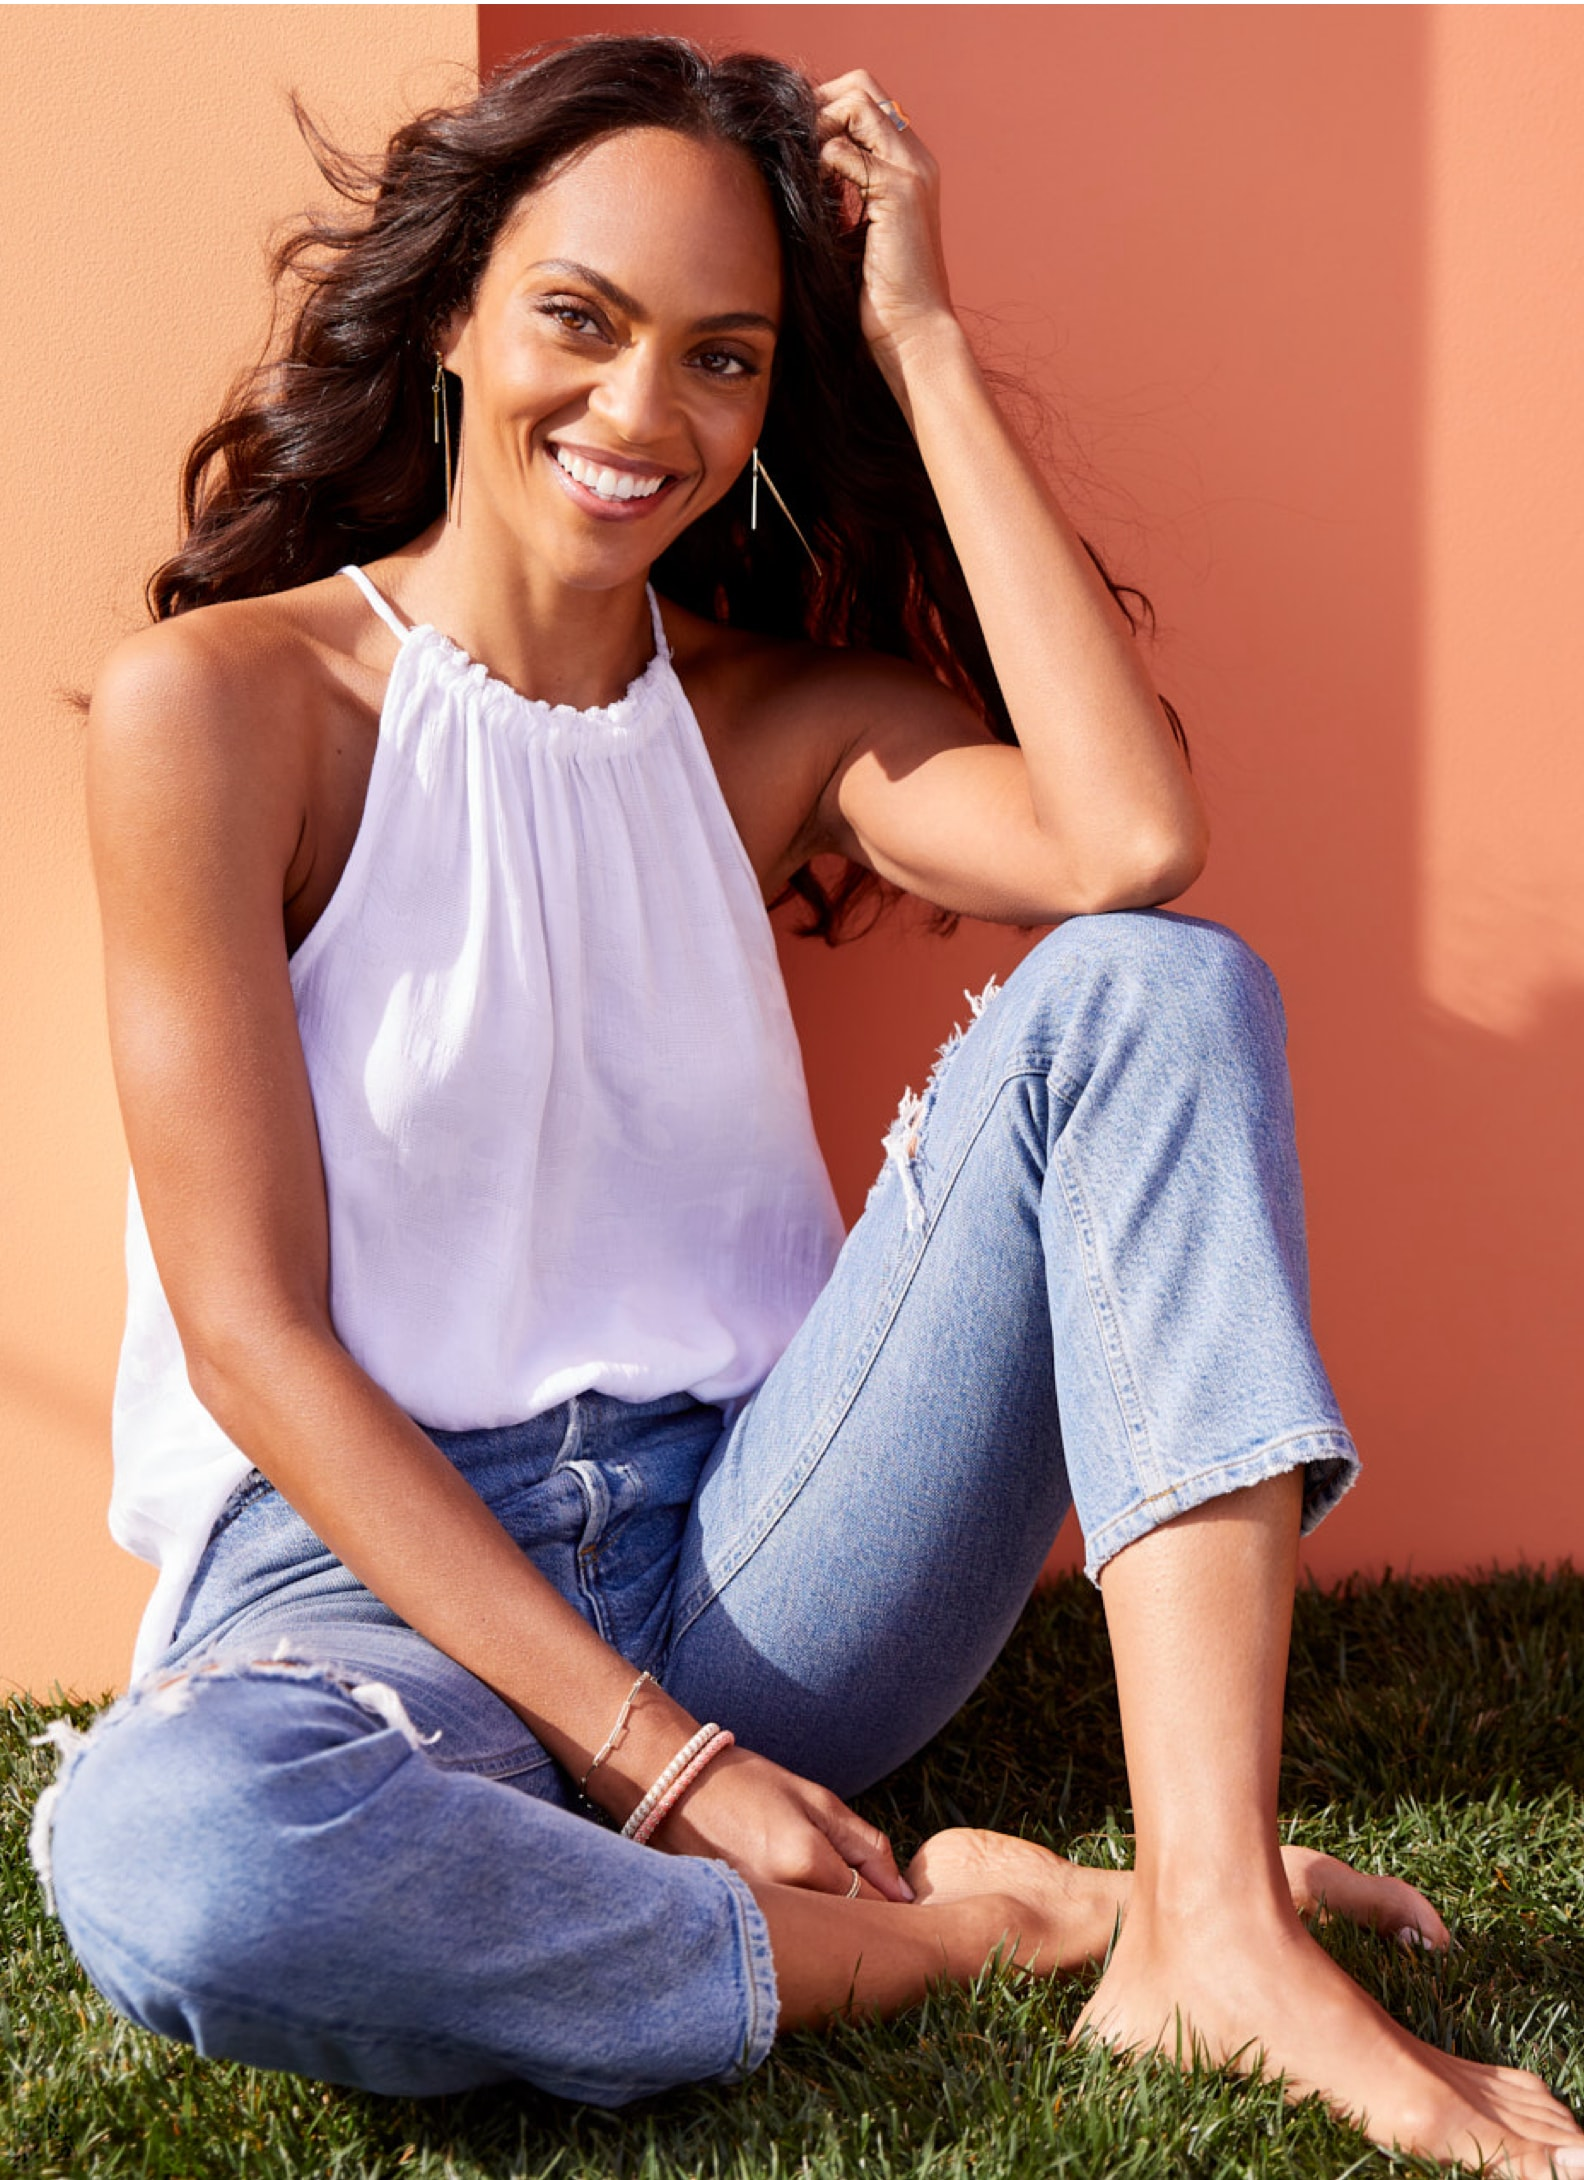 Woman wearing white tank and jeans